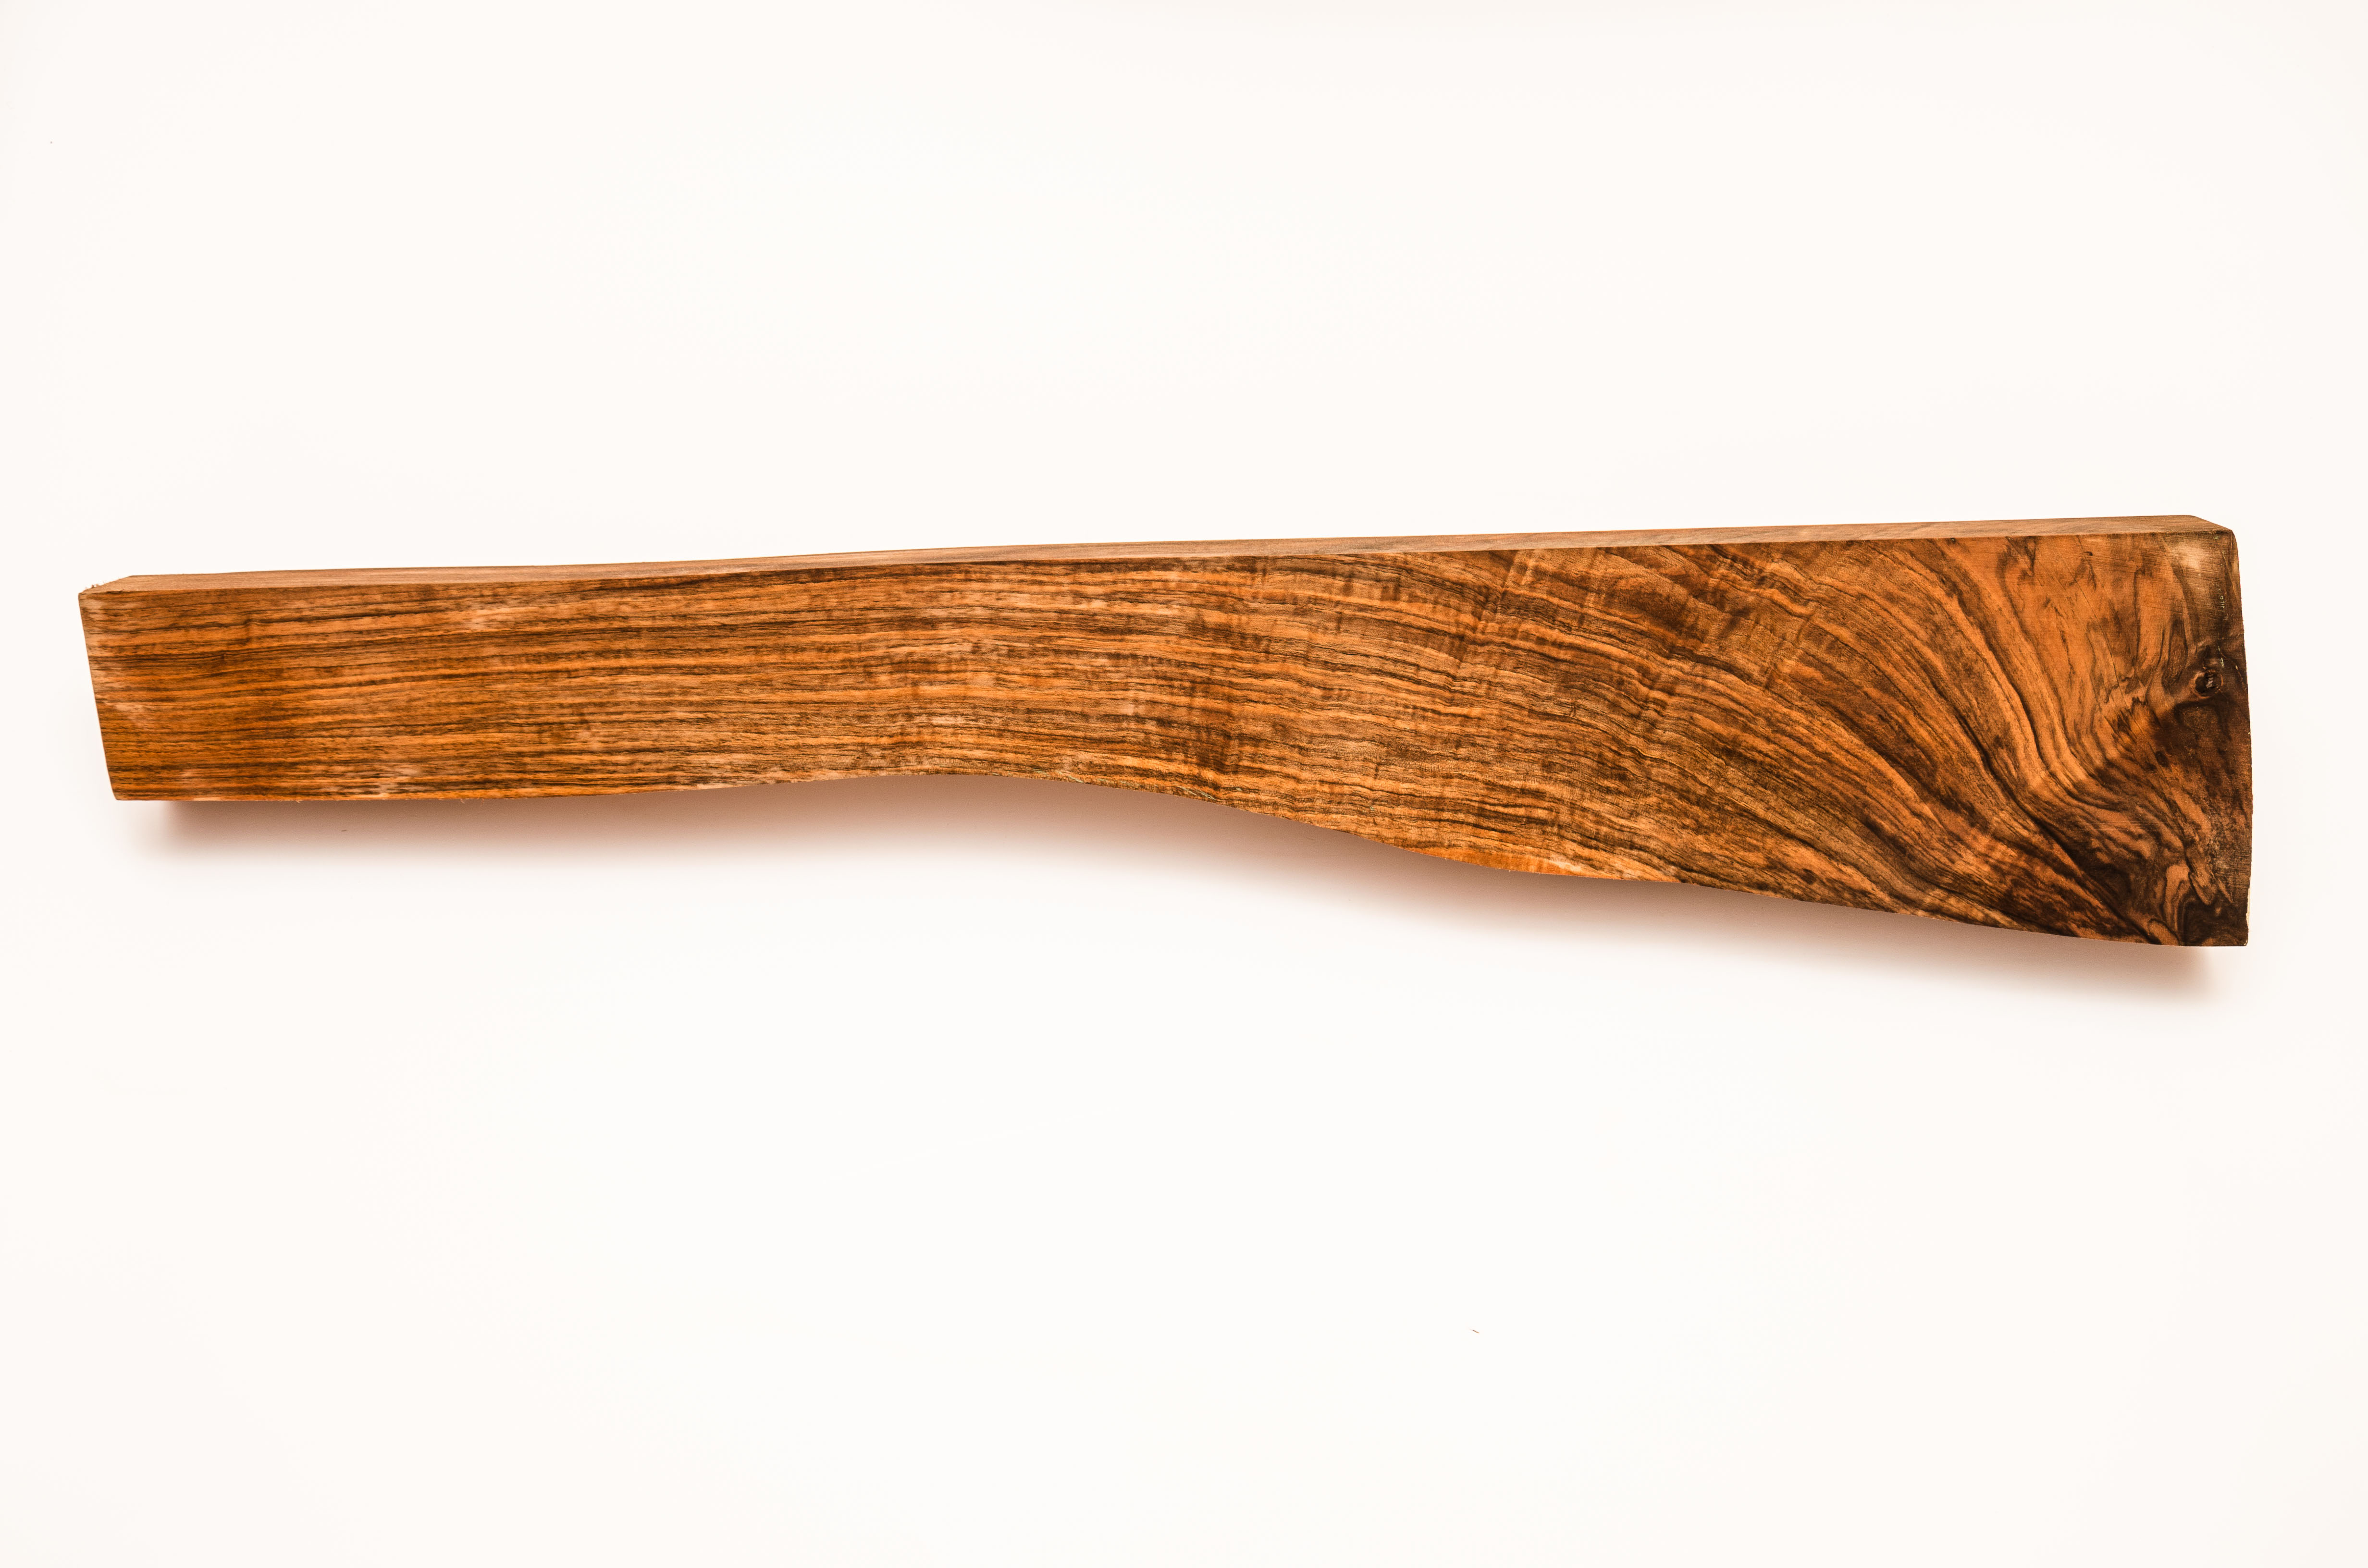 walnut_stock_blanks_for_guns_and_rifles-1447